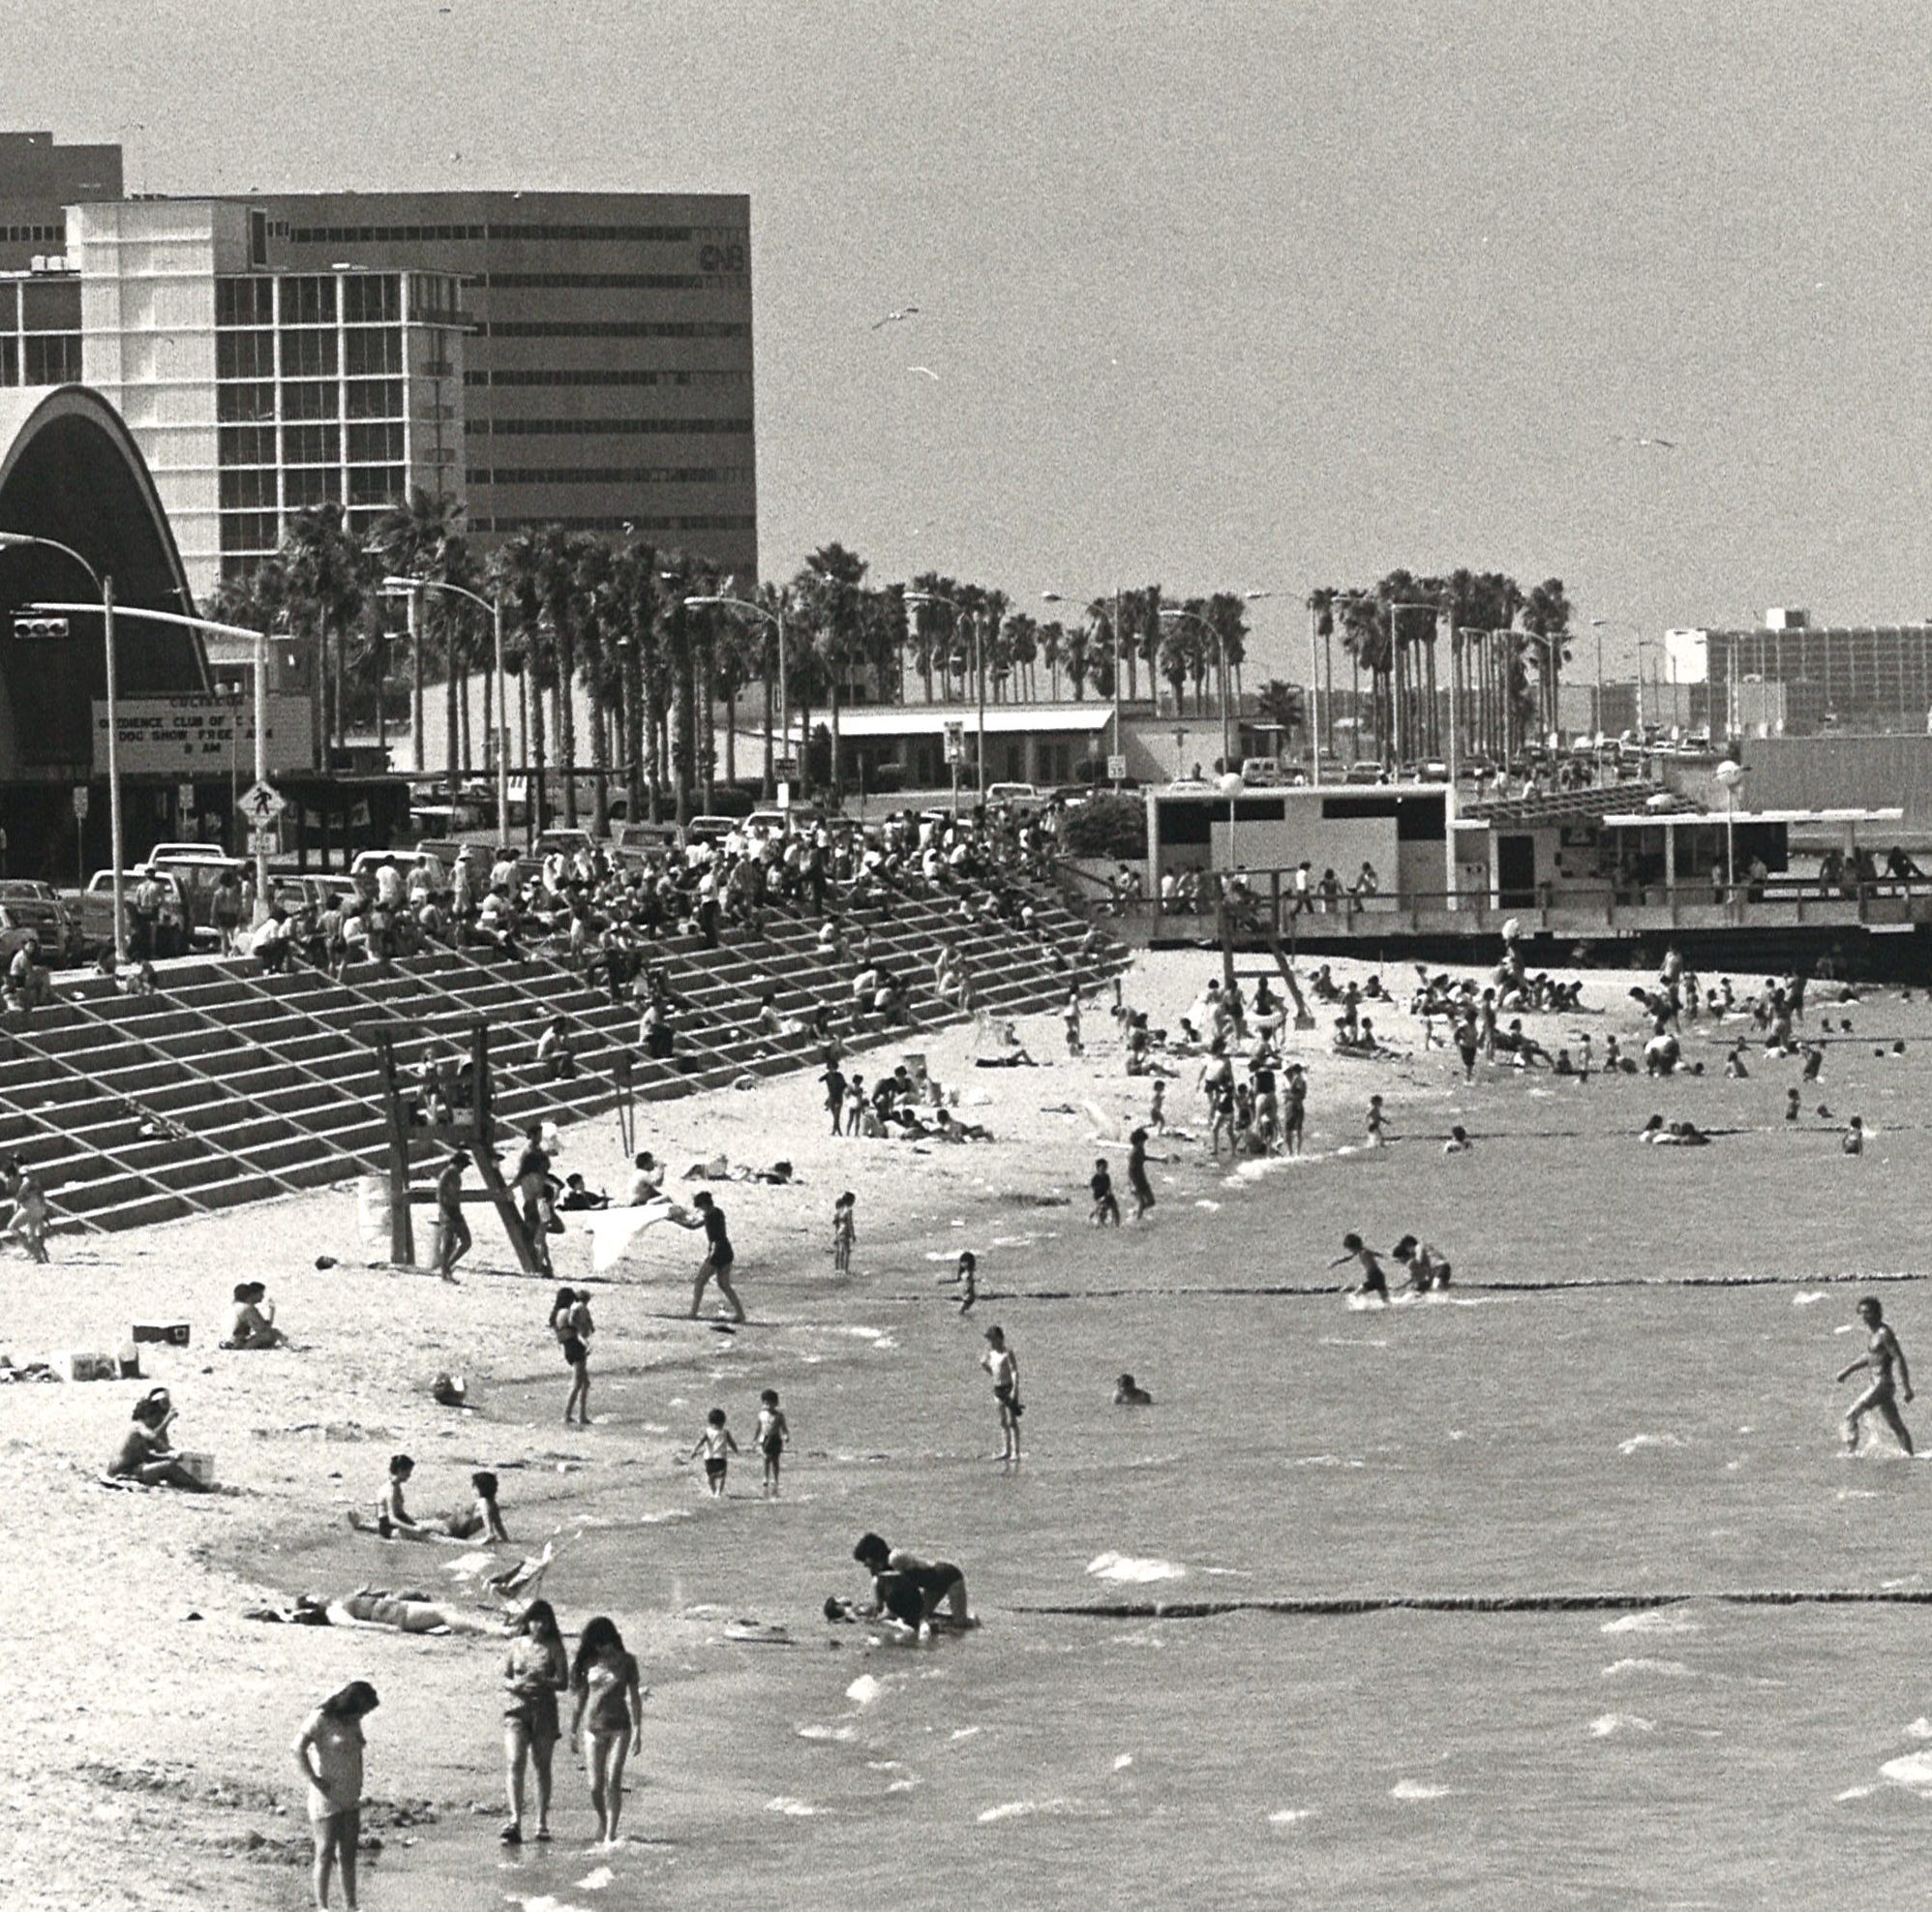 THROWBACK THURSDAY: Corpus Christi's McGee Beach in downtown dedicated in 1942